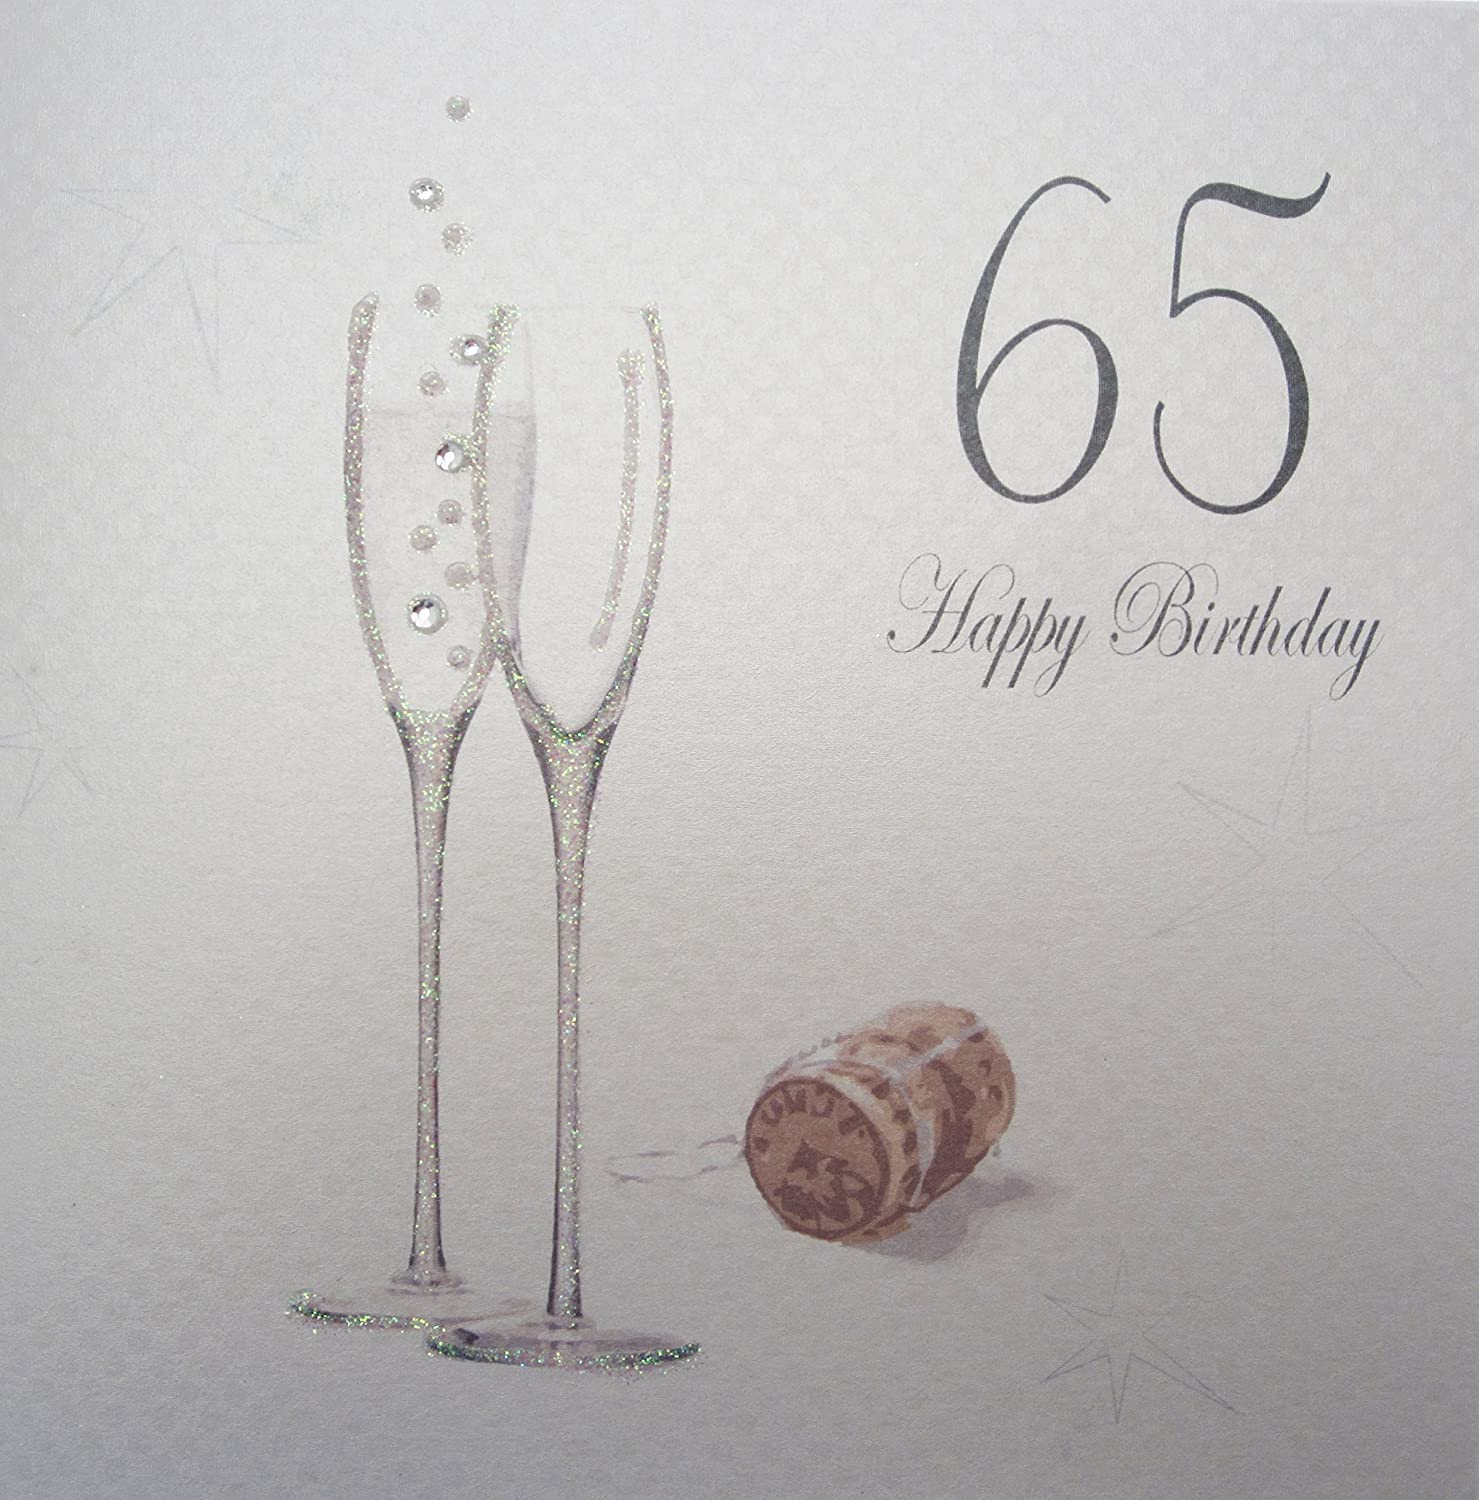 WHITE COTTON CARDS 65 Happy Handmade 65th Birthday Card Champagne Flutes Amazoncouk Kitchen Home